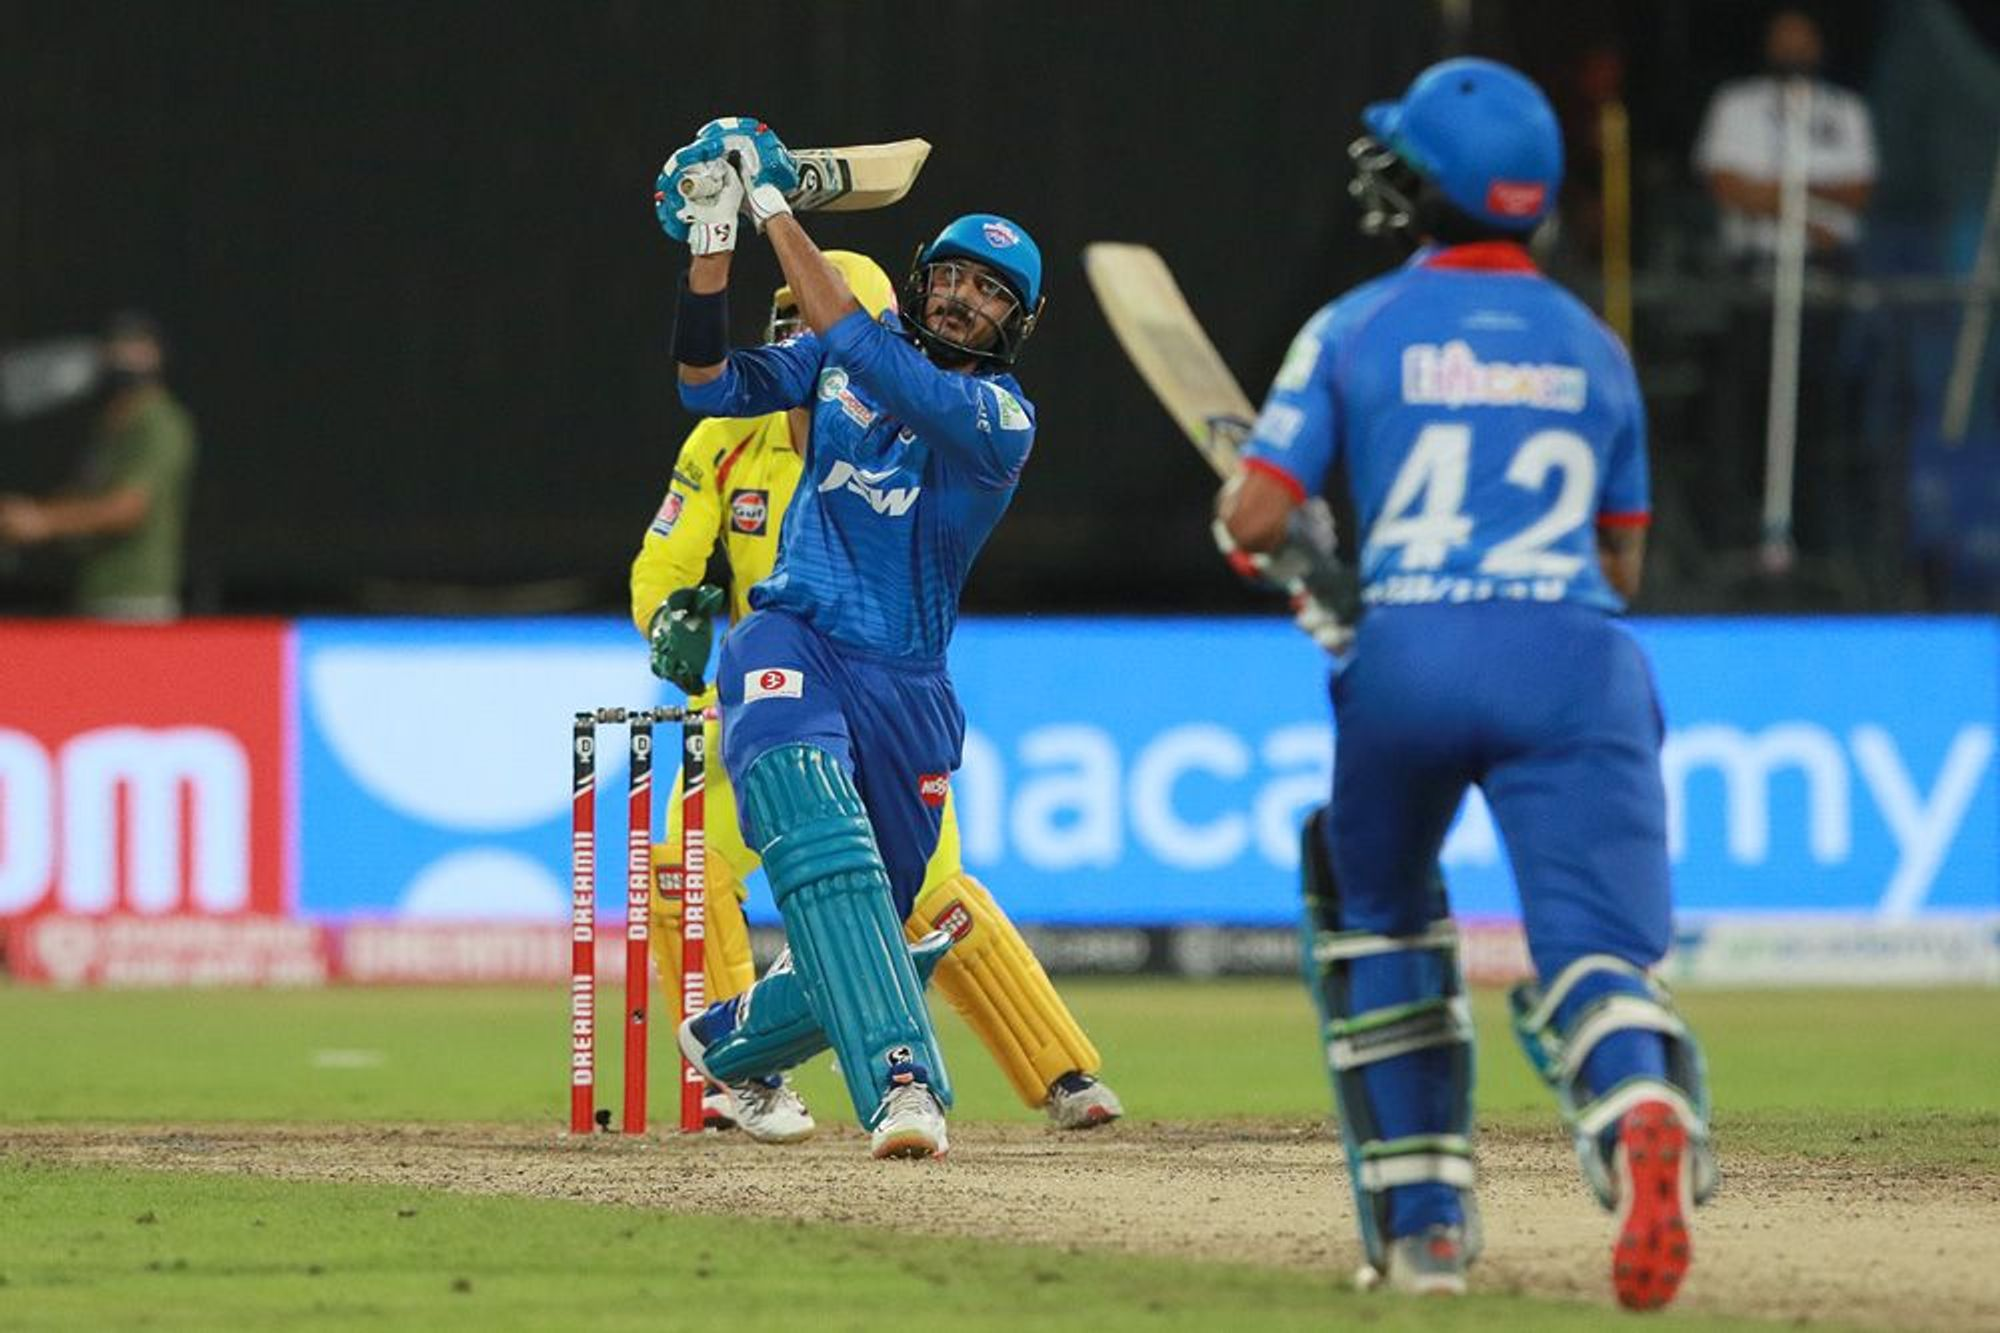 Akshar remained unbeaten on 21 off 5 balls with a strike rate of 420 | BCCI/IPL